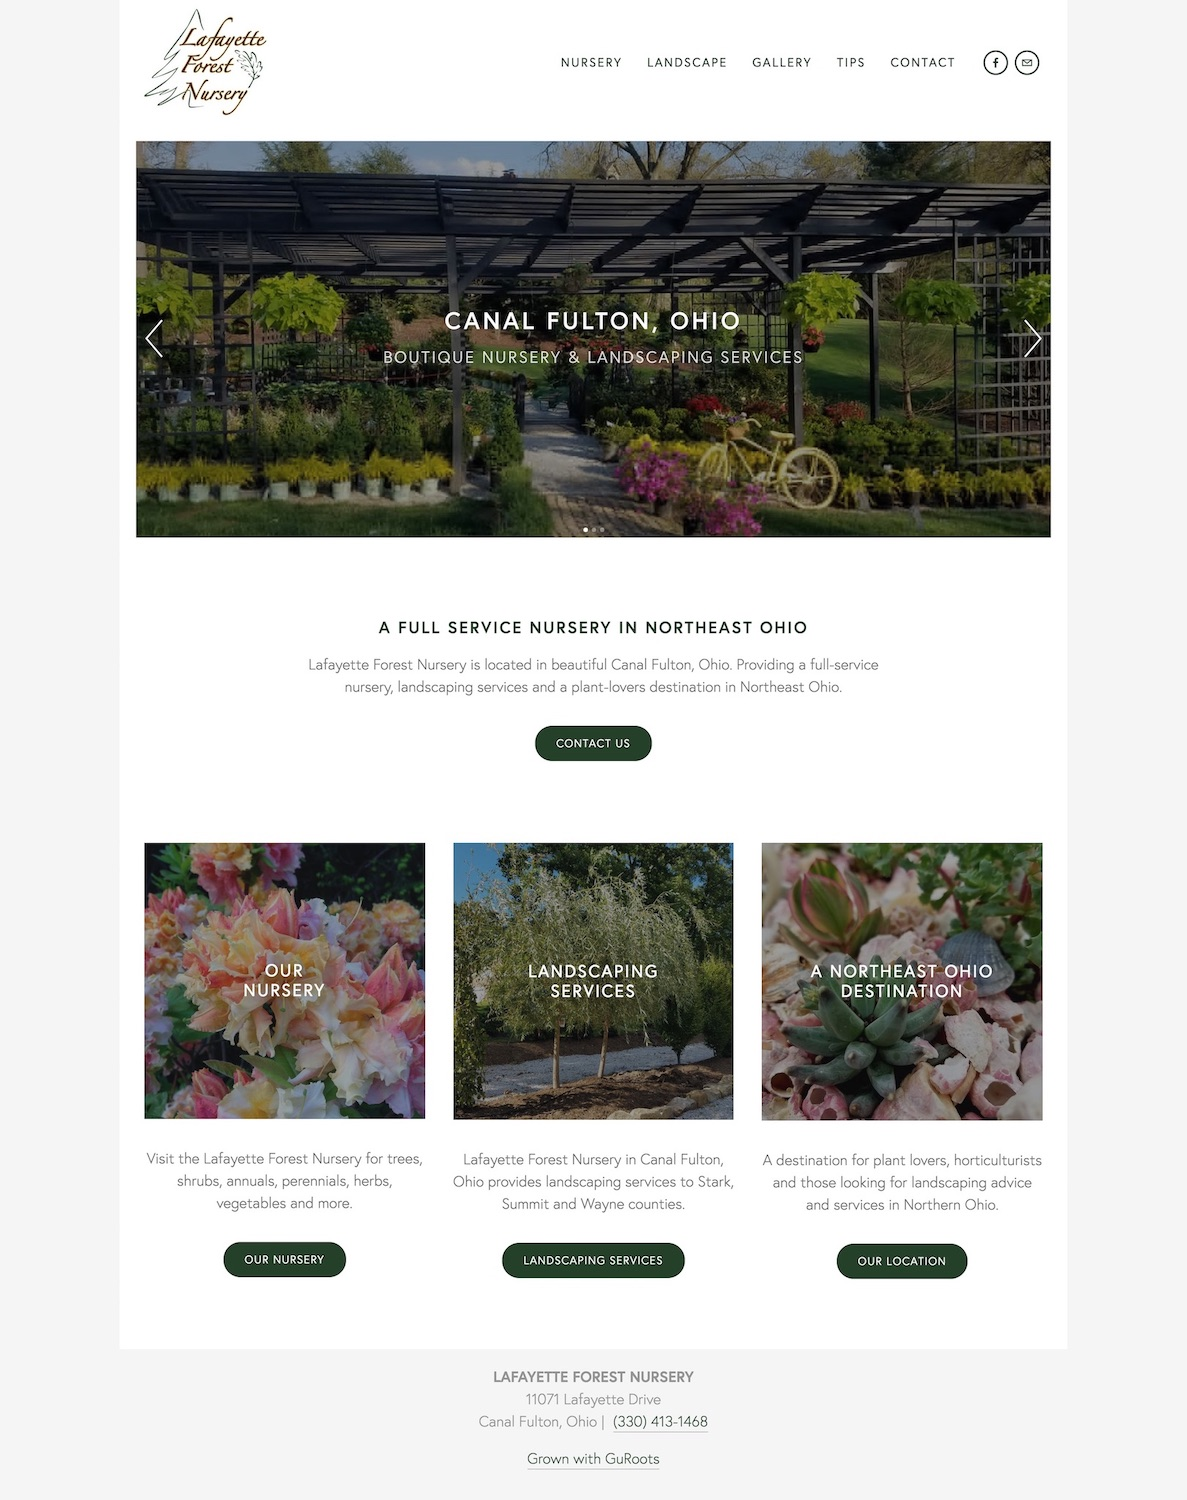 Boutique Nursery Website Design - Location: Canal Fulton, OhioWebsite design built for a boutique nursery and landscape company in Canal Fulton, Ohio. Showcasing a nursery gallery, services and growing tips, this website is built for user-friendliness with a clean and minimal approach.tags: ohio website design, nursery website design, canal fulton website design, northeast ohio website design, cleveland website design